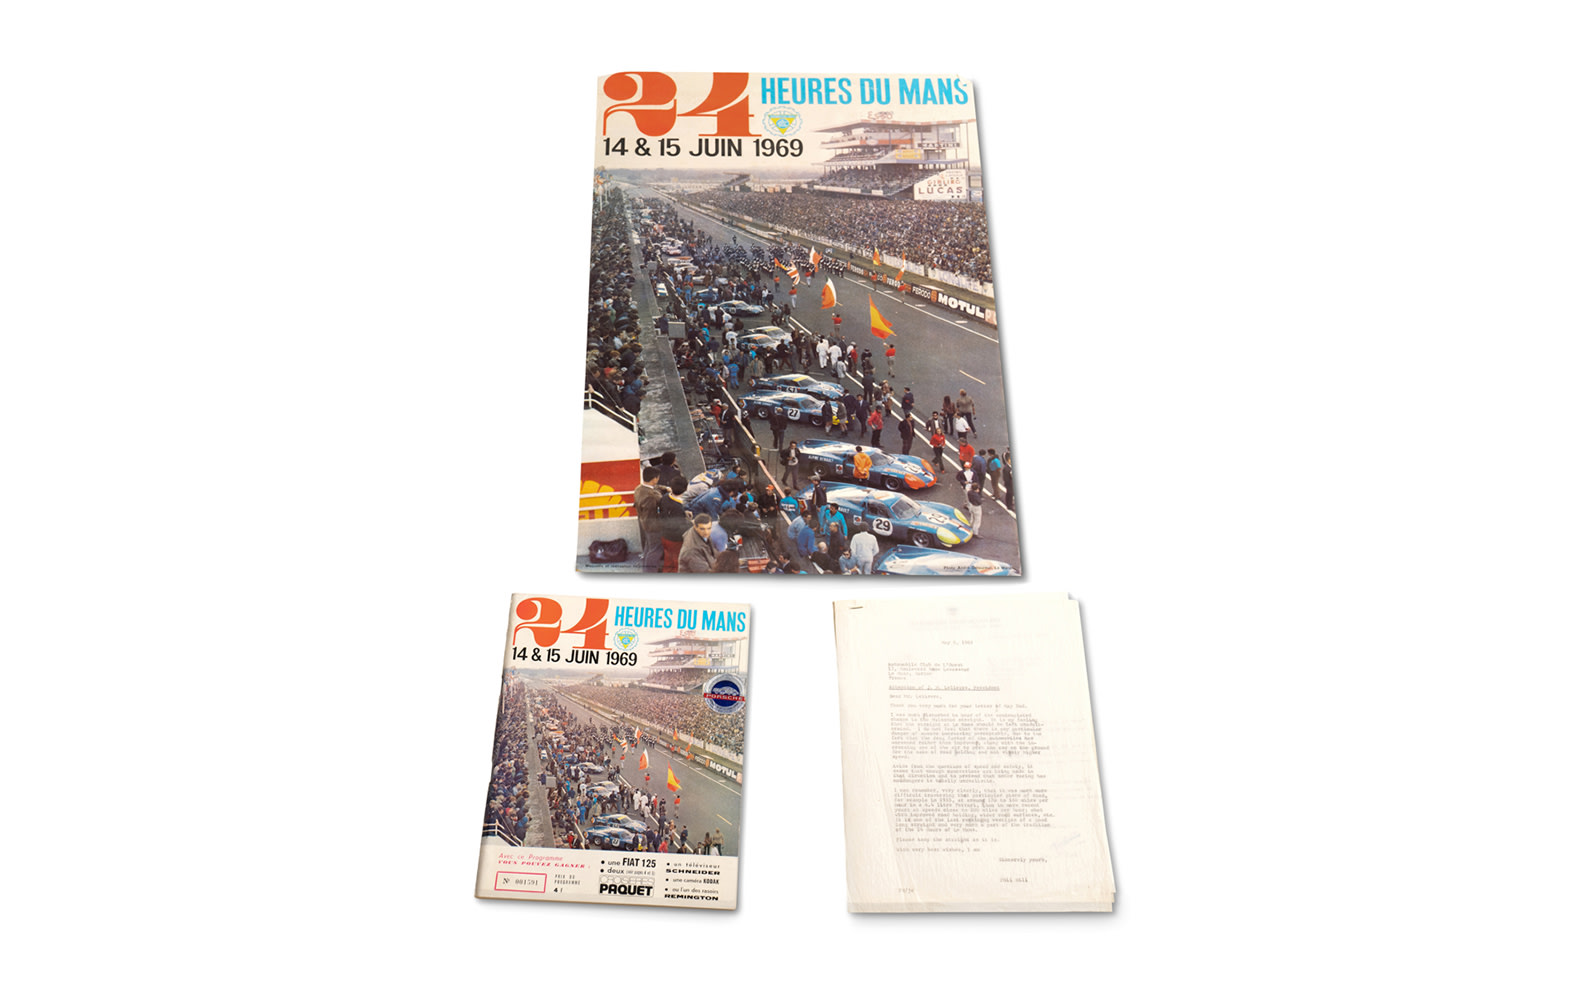 1969 24 Hours of Le Mans Official Race Program, Two Posters (Unframed), and Correspondence